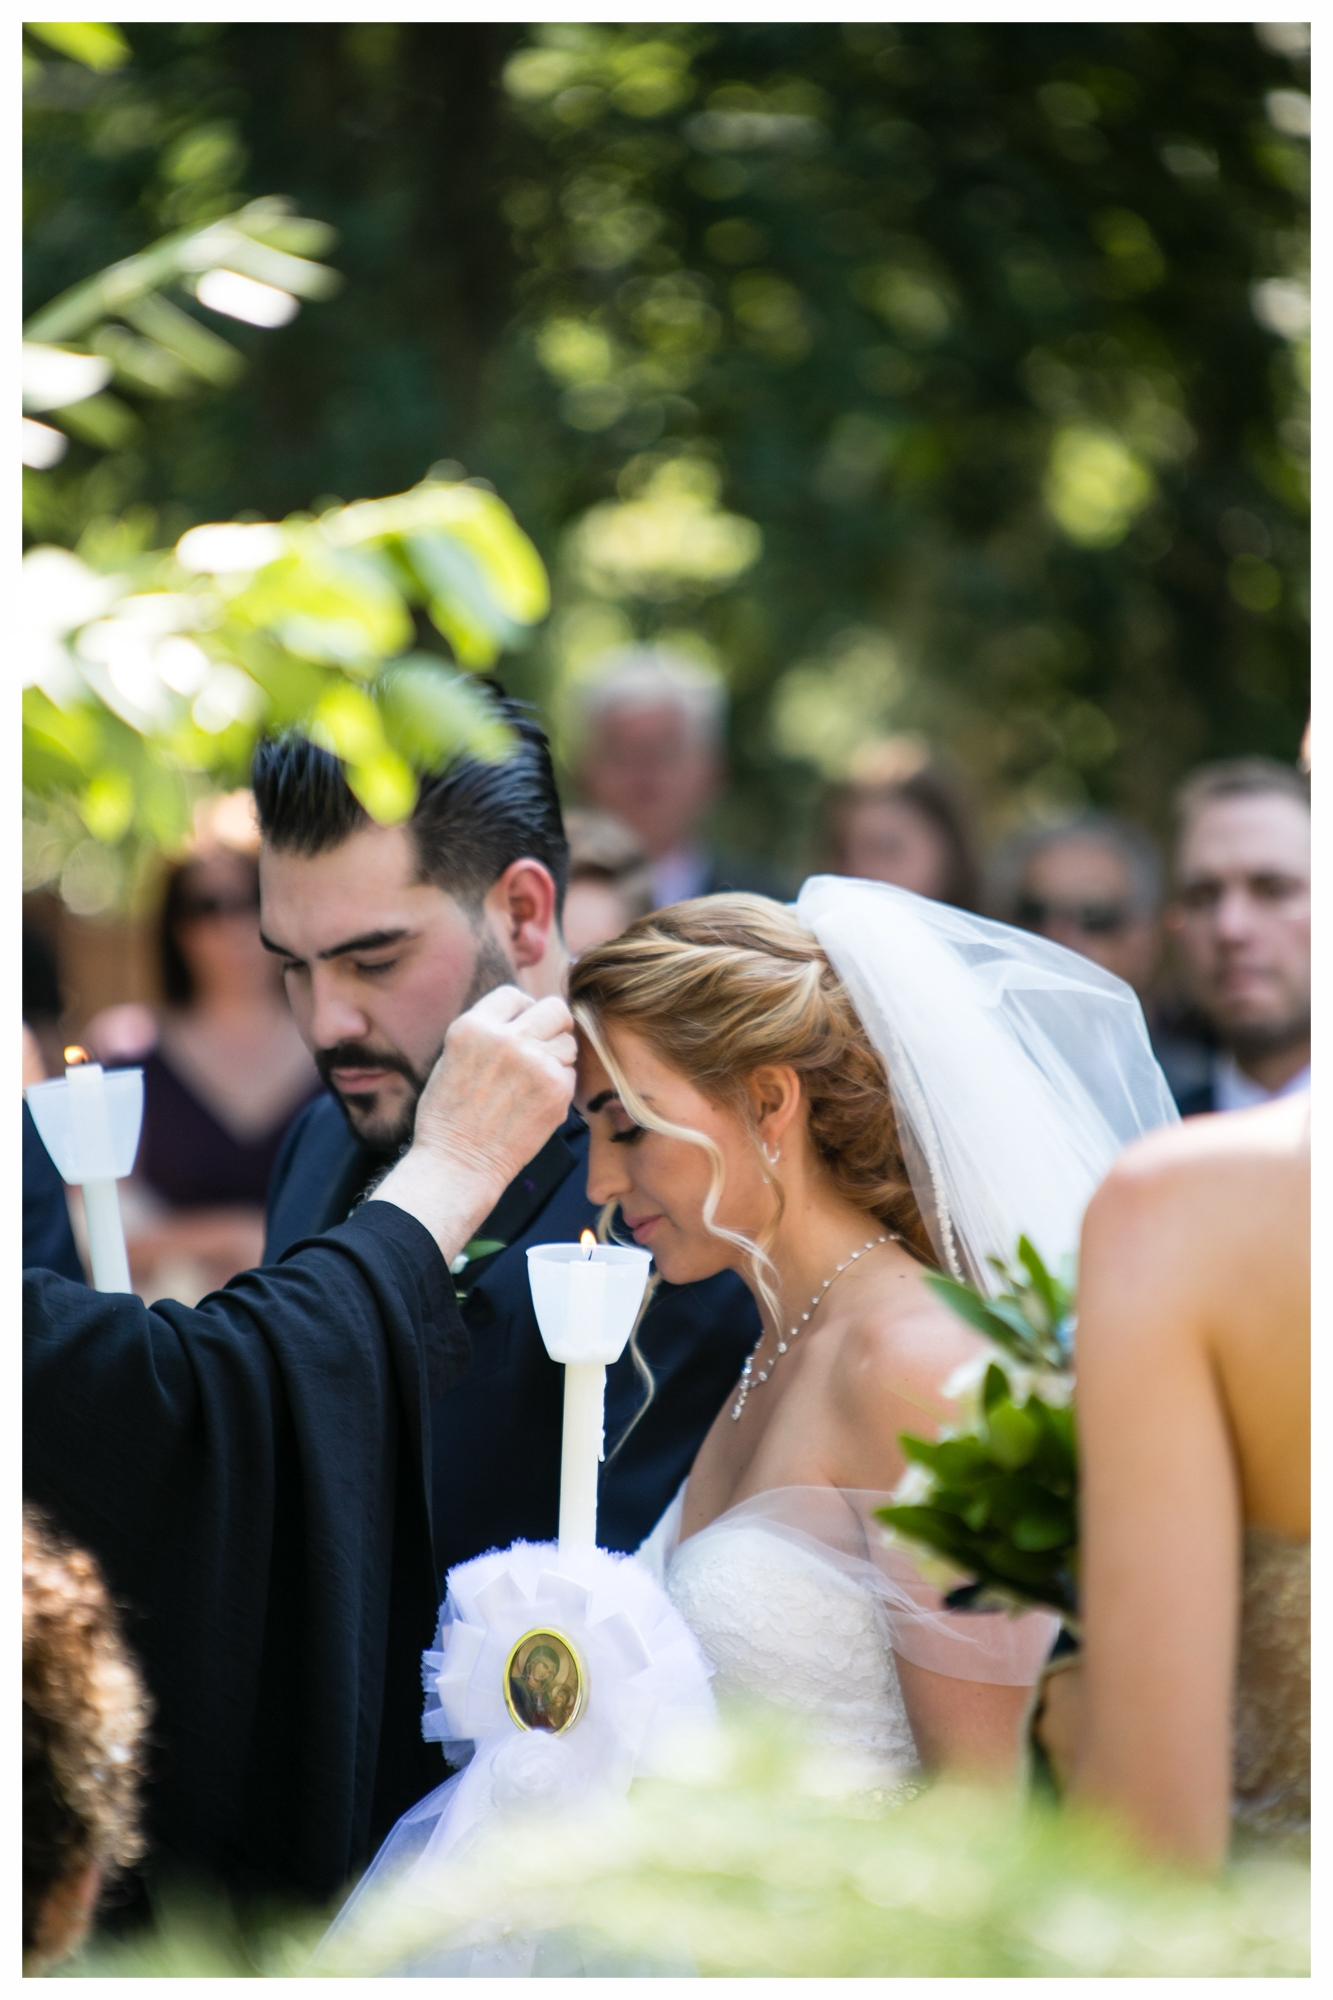 greek-wedding-salt-lake-city-utah